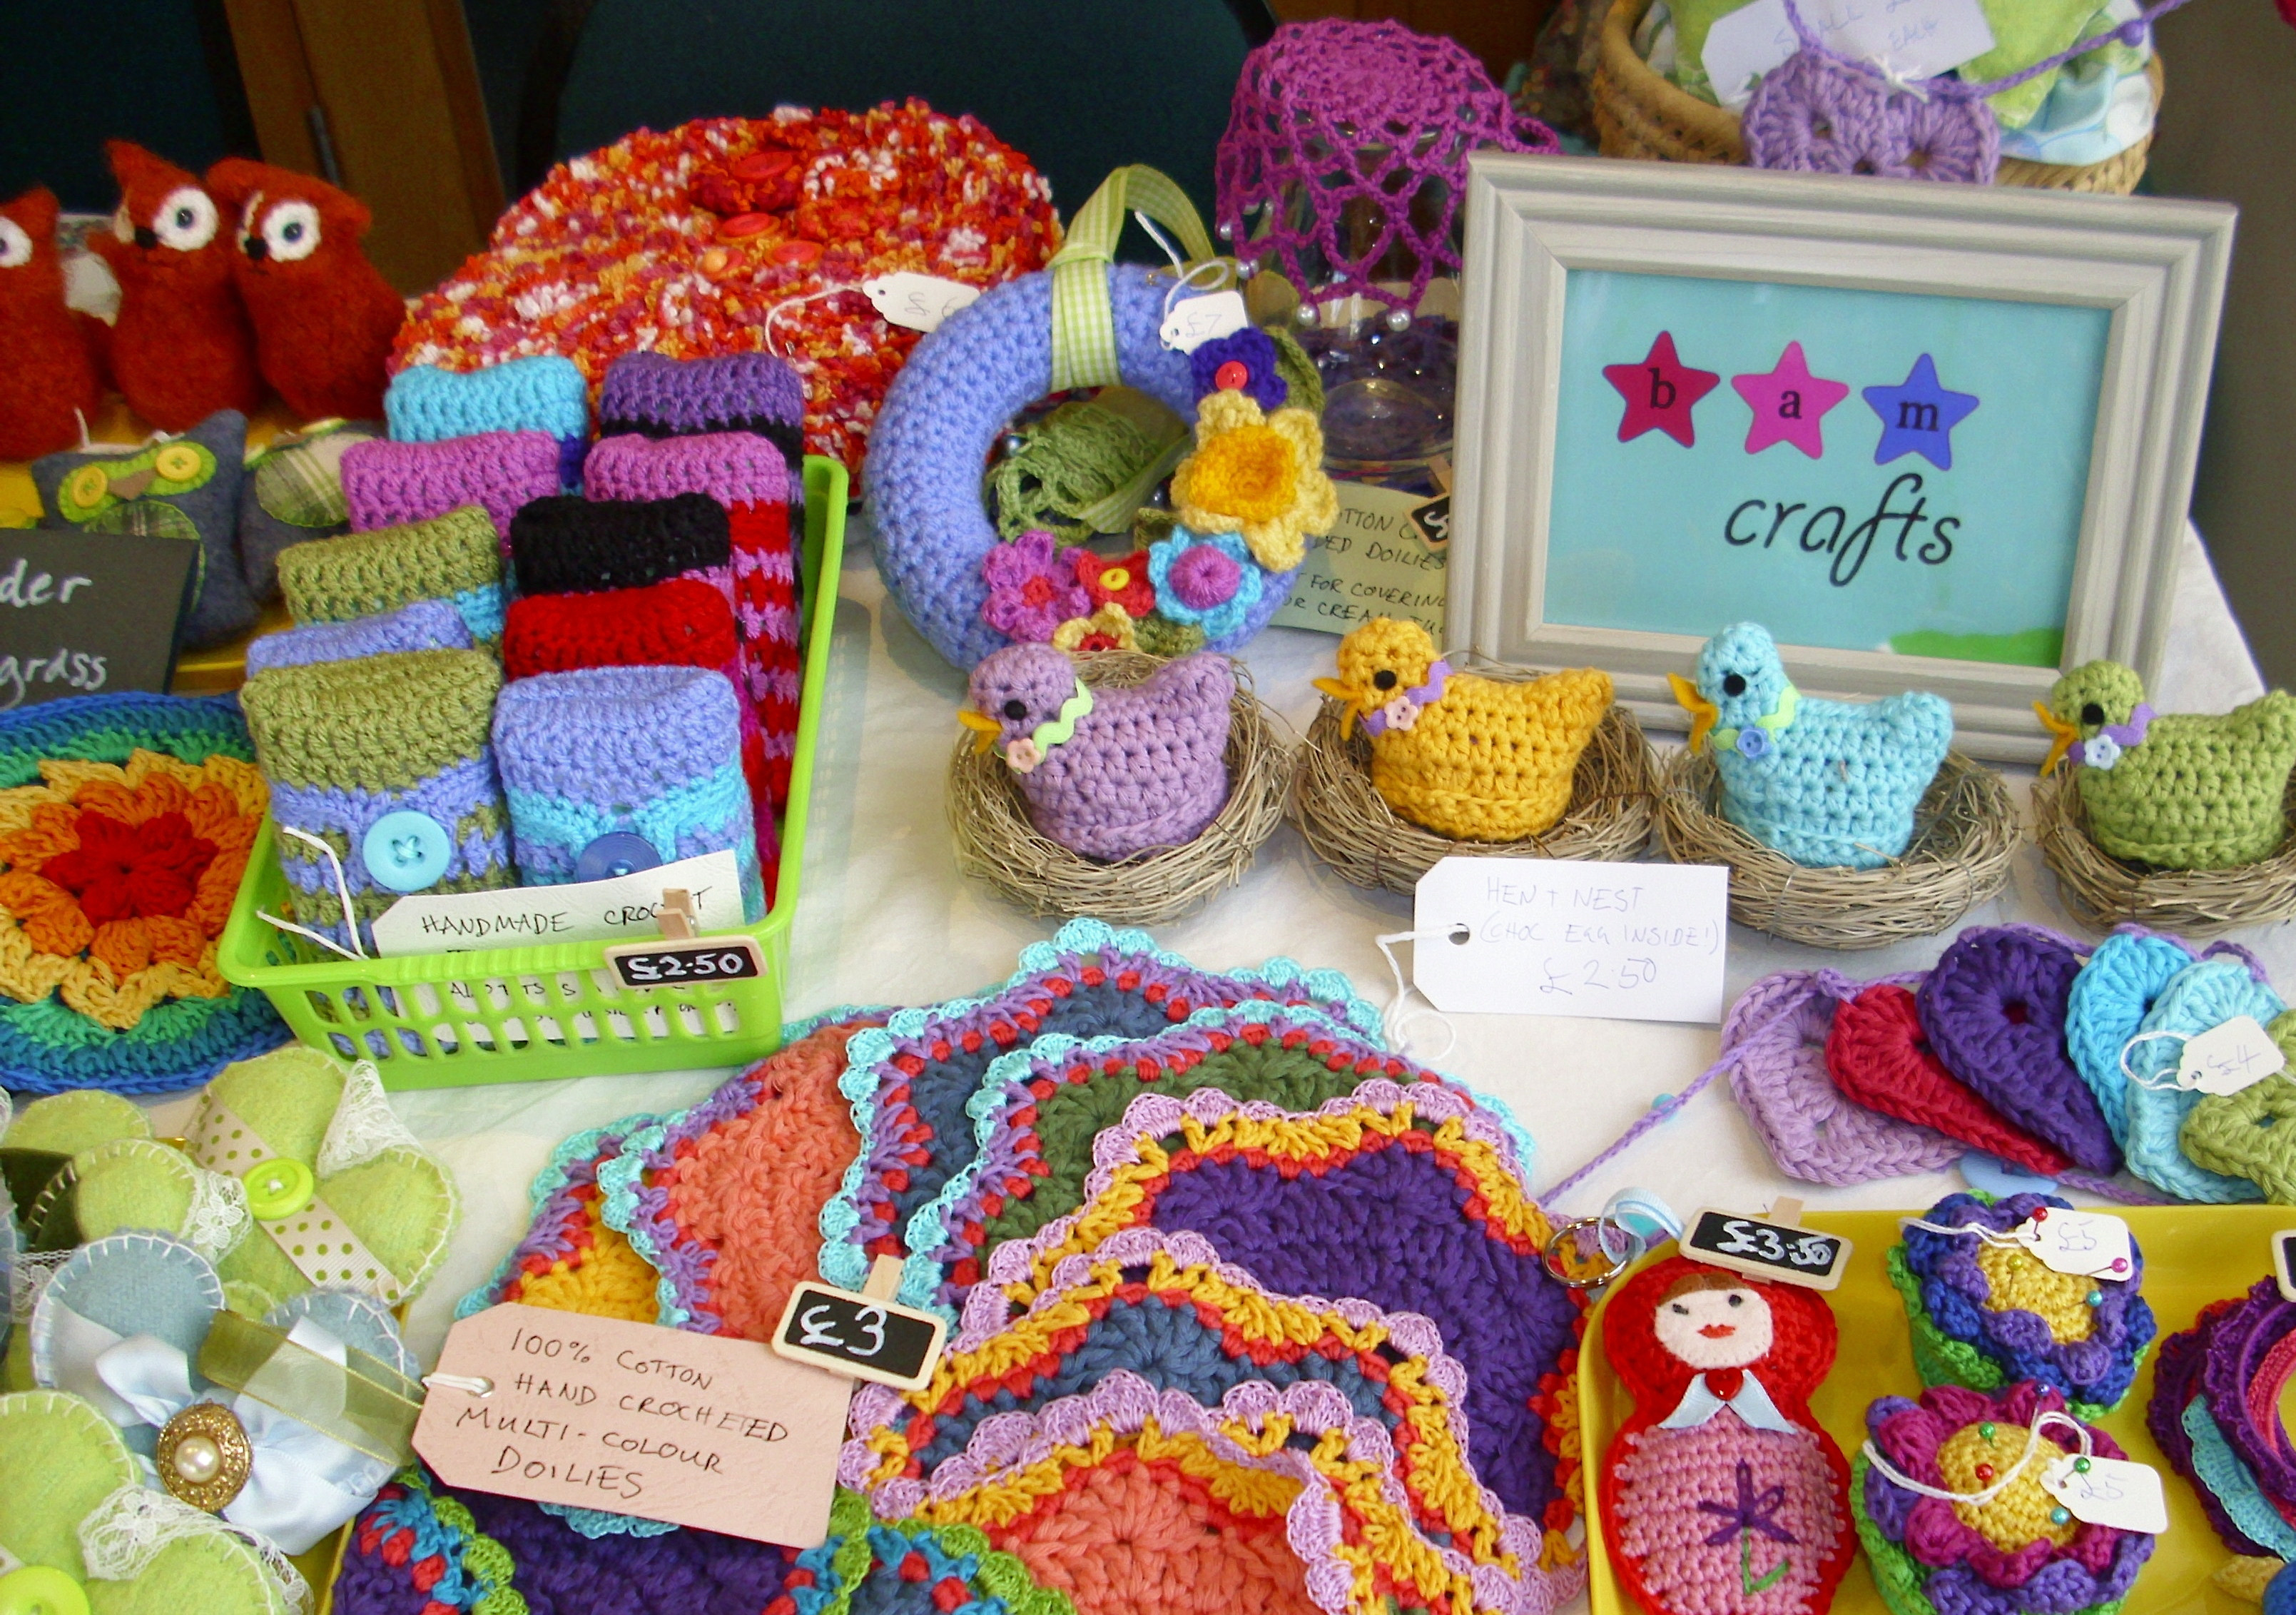 Best Selling Crochet Items Elegant Frames Magnets Crocheted Easteriness and Fifty Yes Of Top 50 Pictures Best Selling Crochet Items